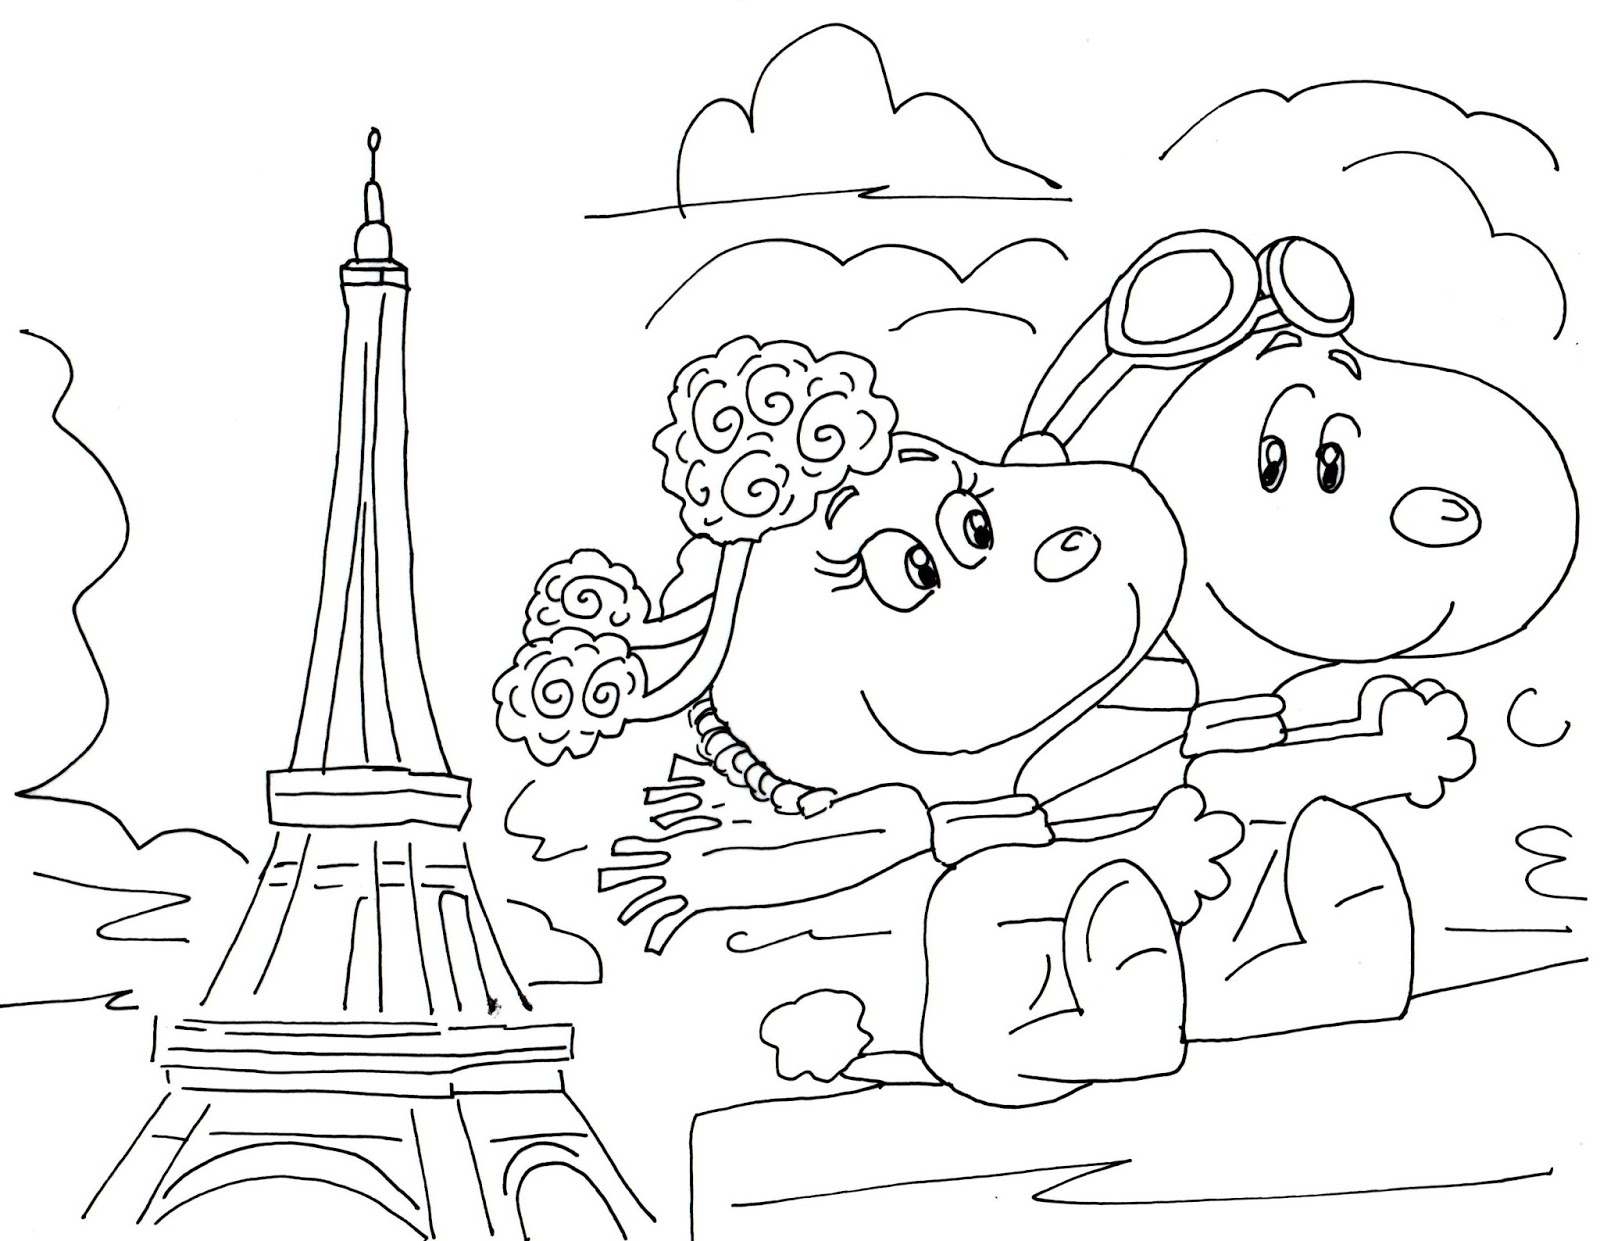 Free Charlie Brown Snoopy and Peanuts Coloring Pages: Fifi ...